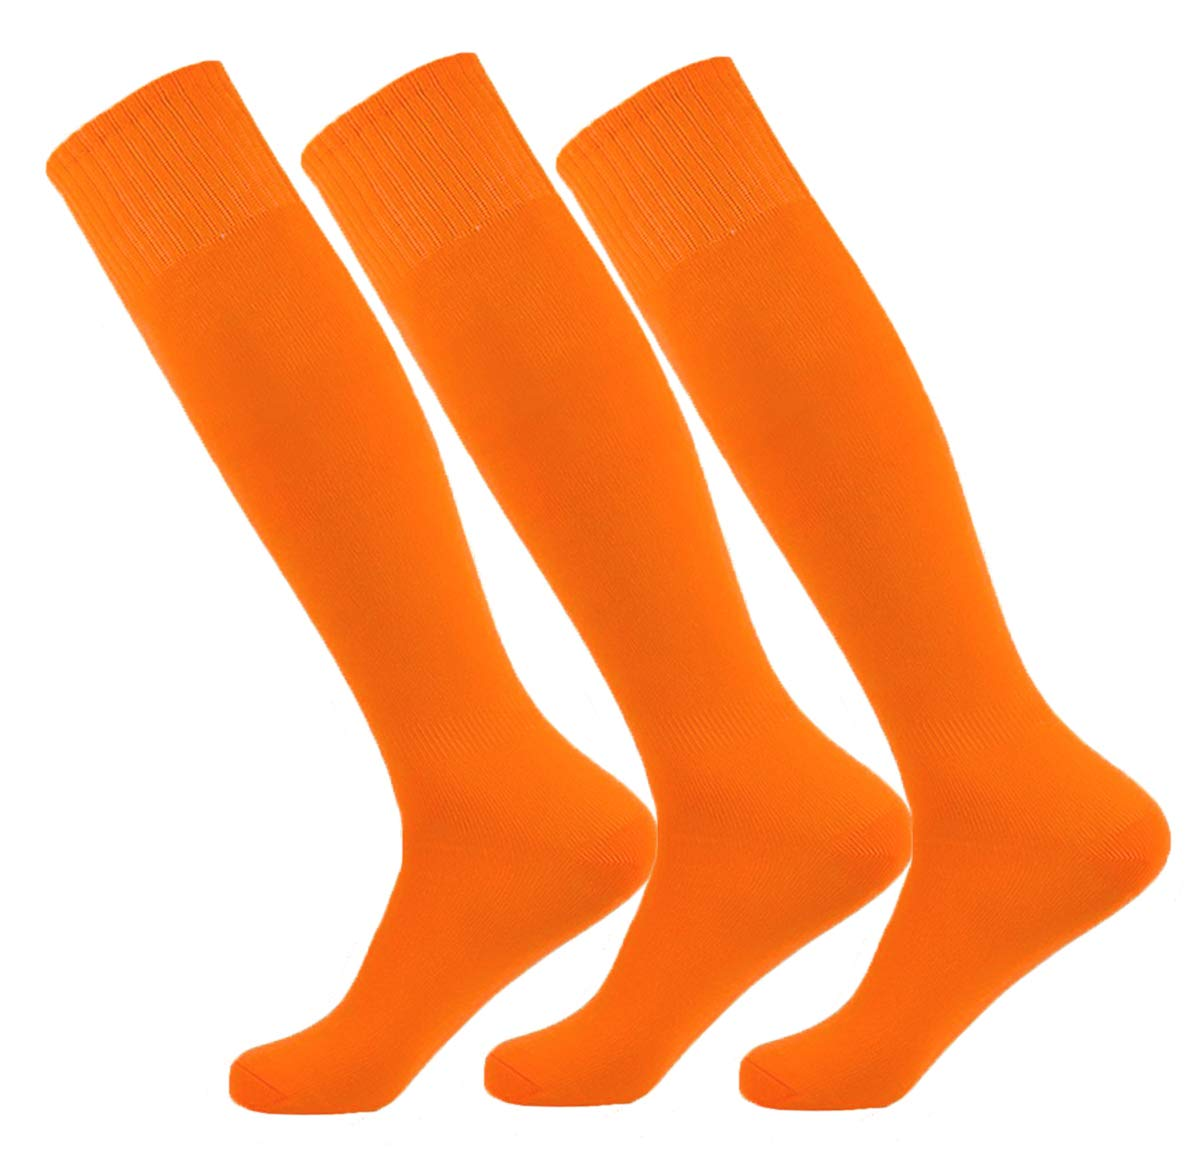 Orange Large Performance Moisture Wicking Knee High Sports Socks for Baseball/Soccer/Lacrosse (3Pairs-Red/Or by MOAIR